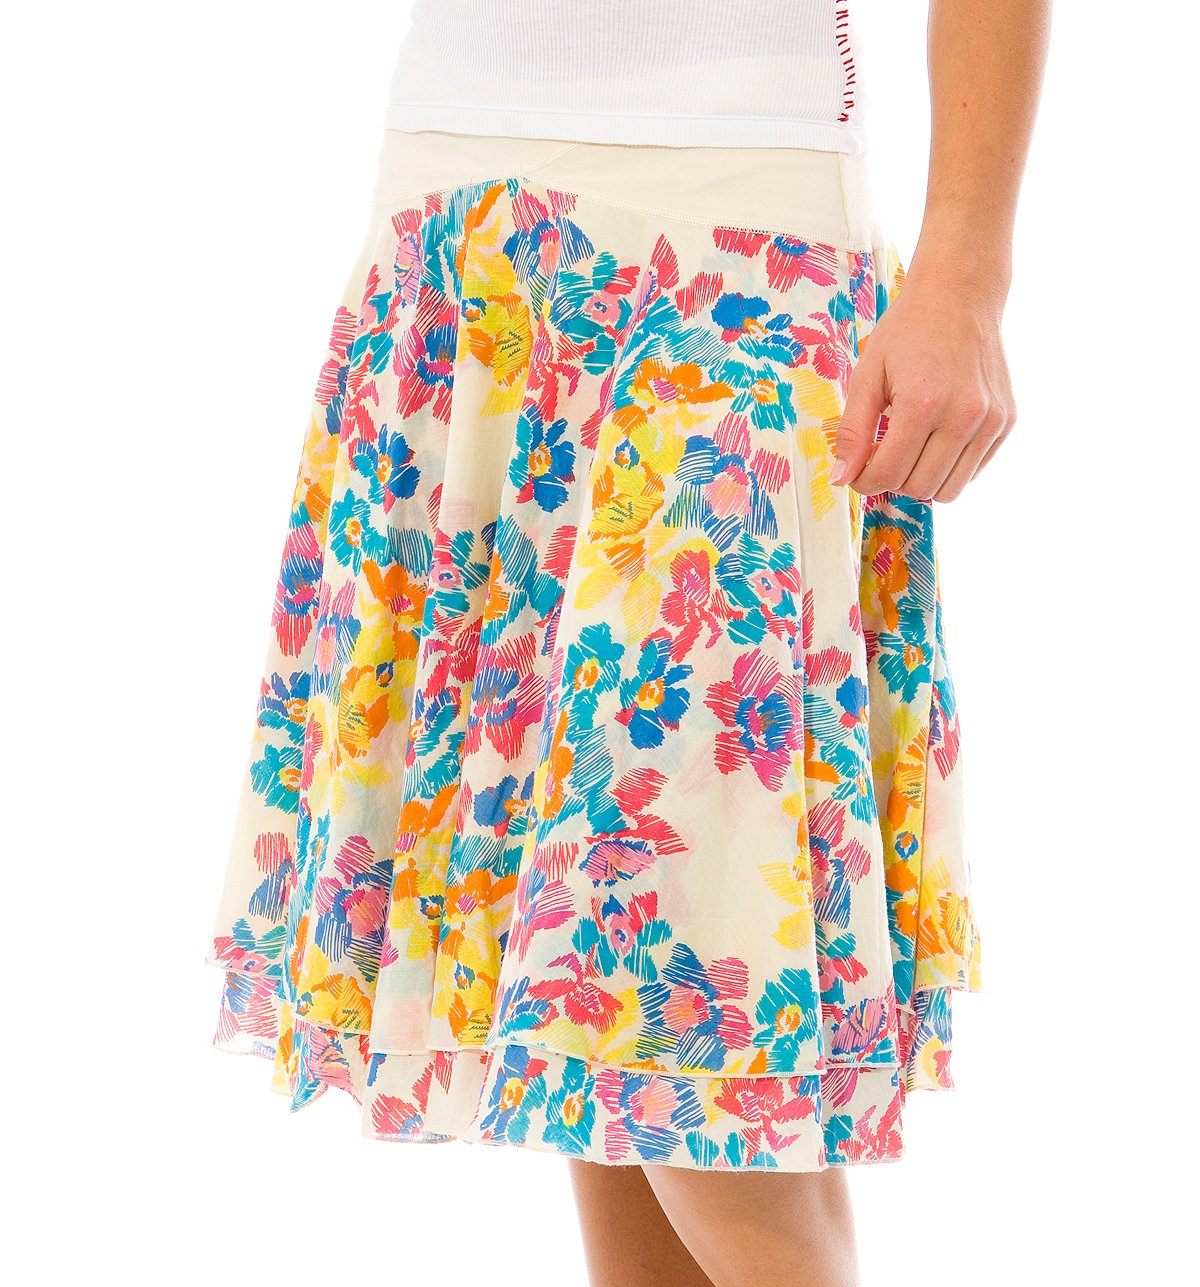 Sketch Flower Layered Yoke Skirt